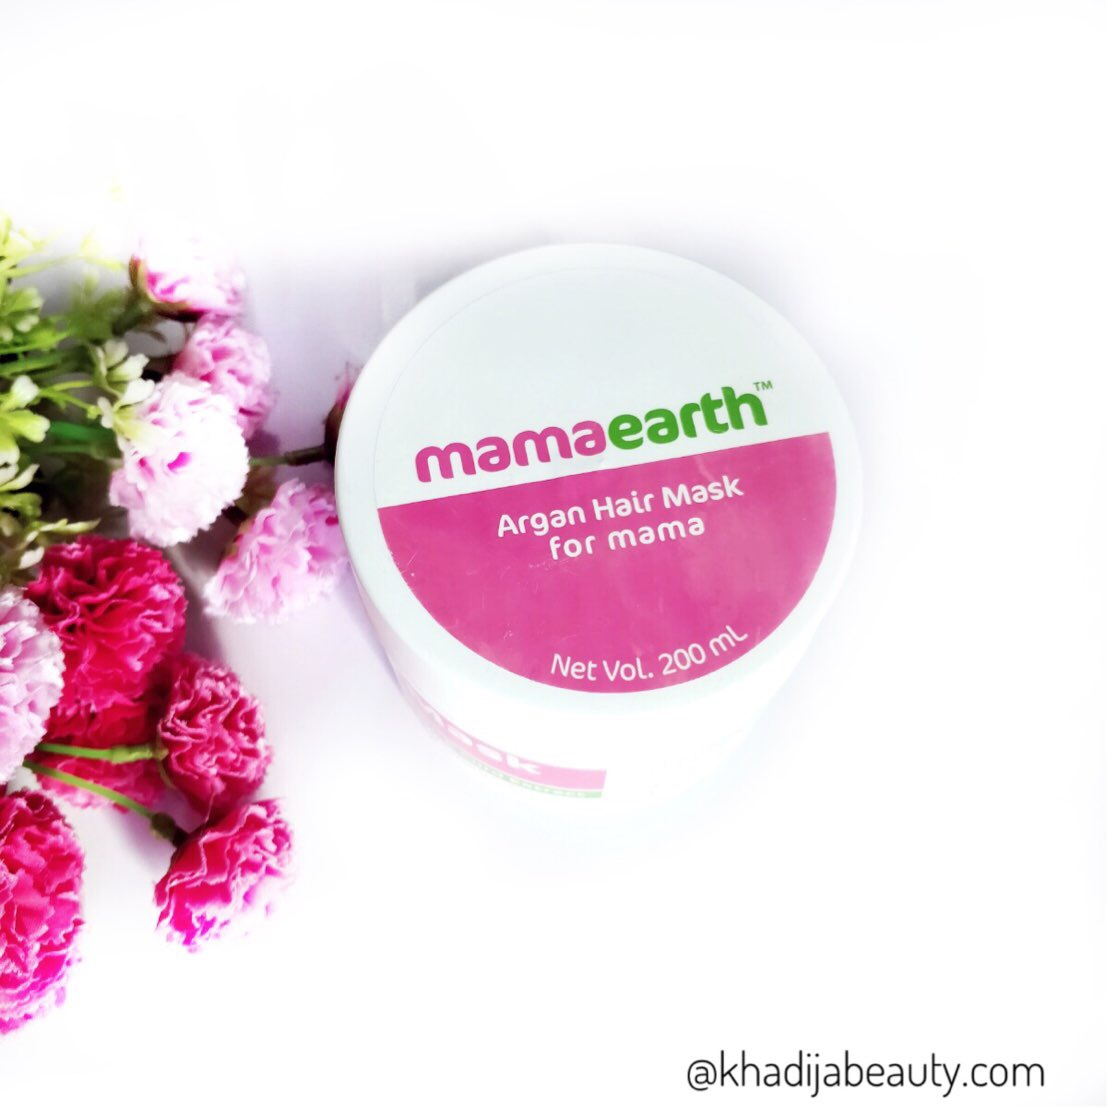 mamaearth hair mask, khadija beauty